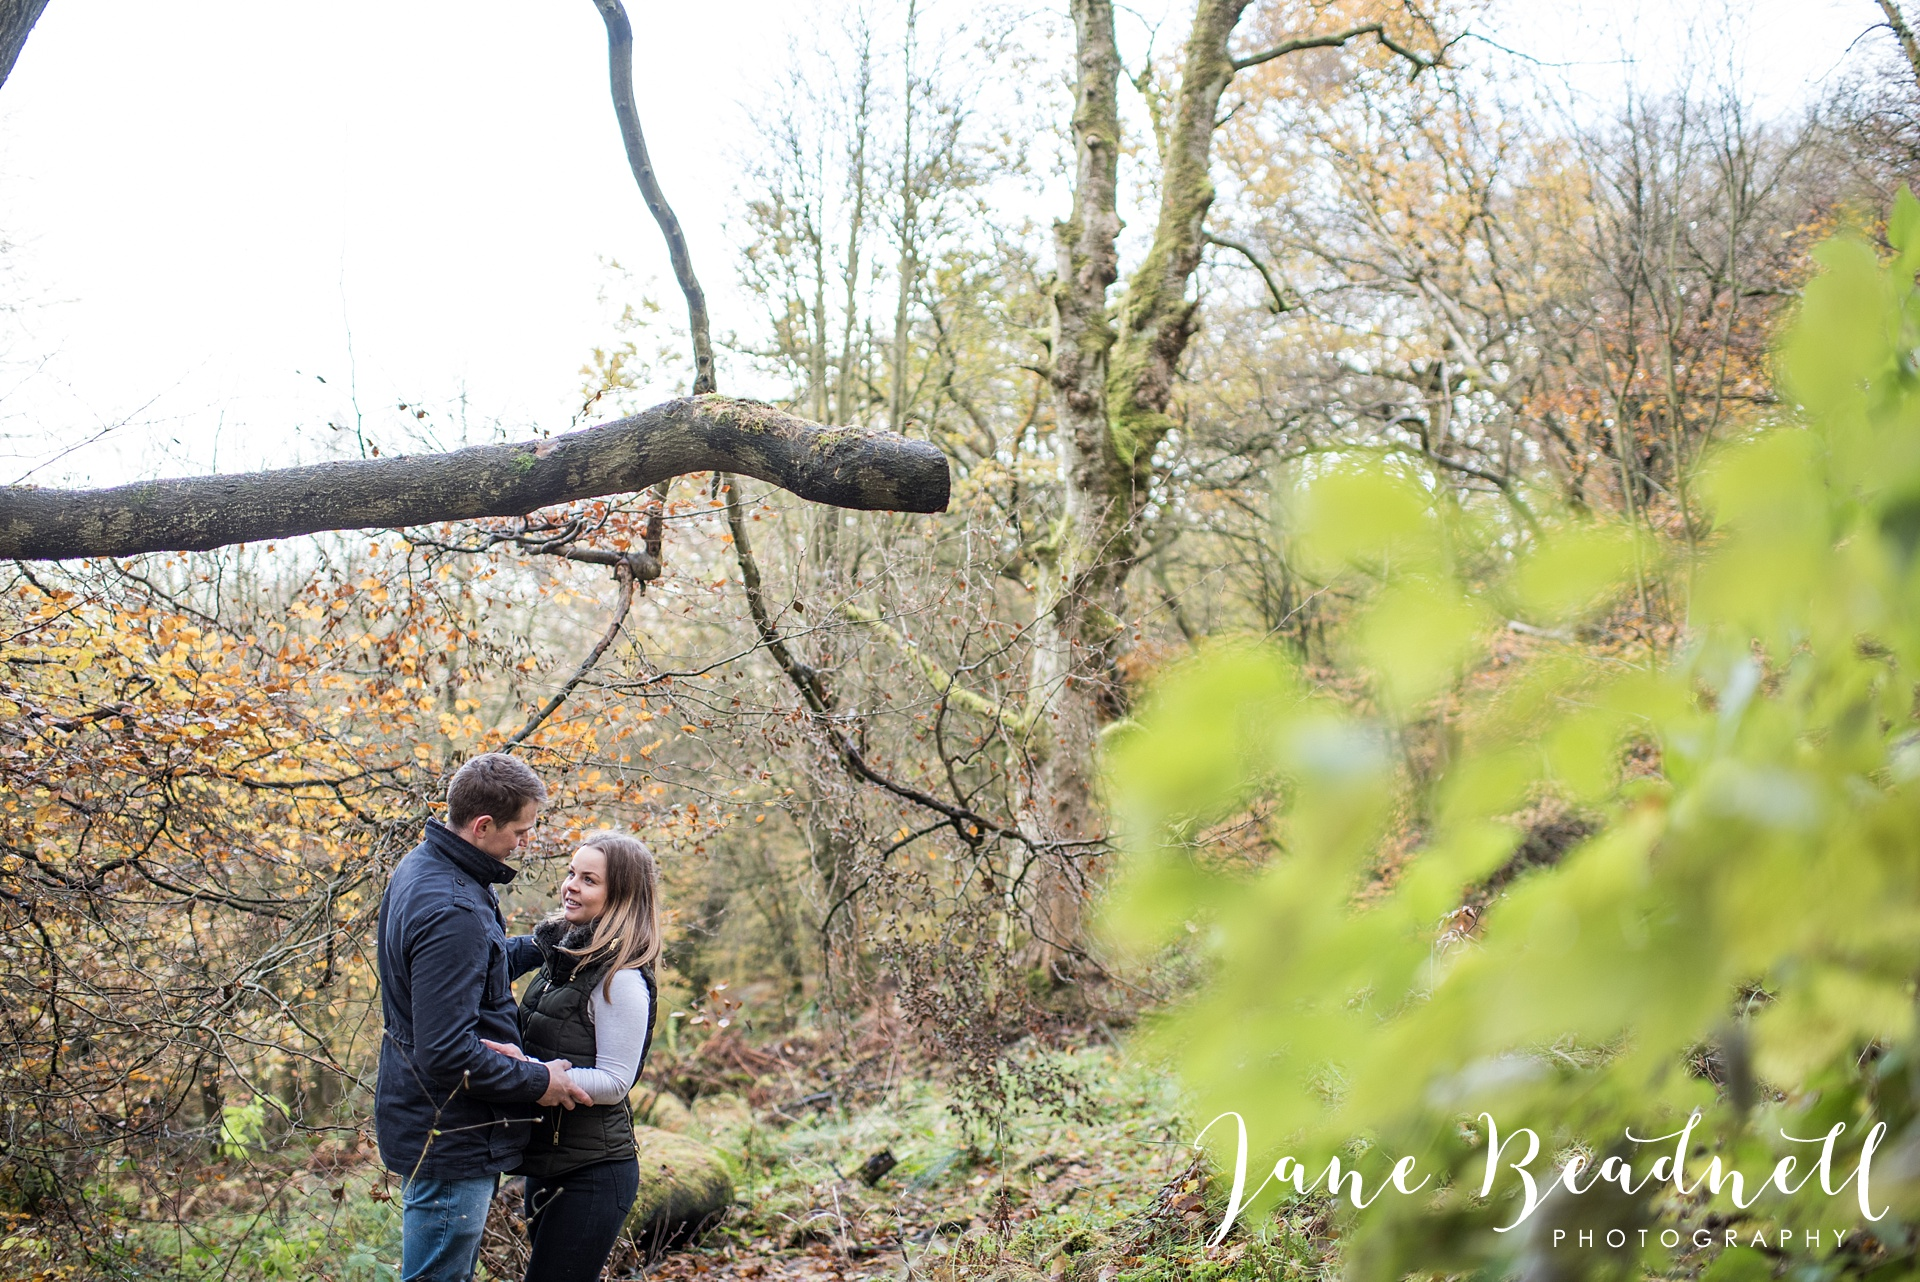 engagement-shoot-yorkshire-wedding-photographer-jane-beadnell-photography-uk-and-destination-wedding-photographer-engagement-shoot_0029